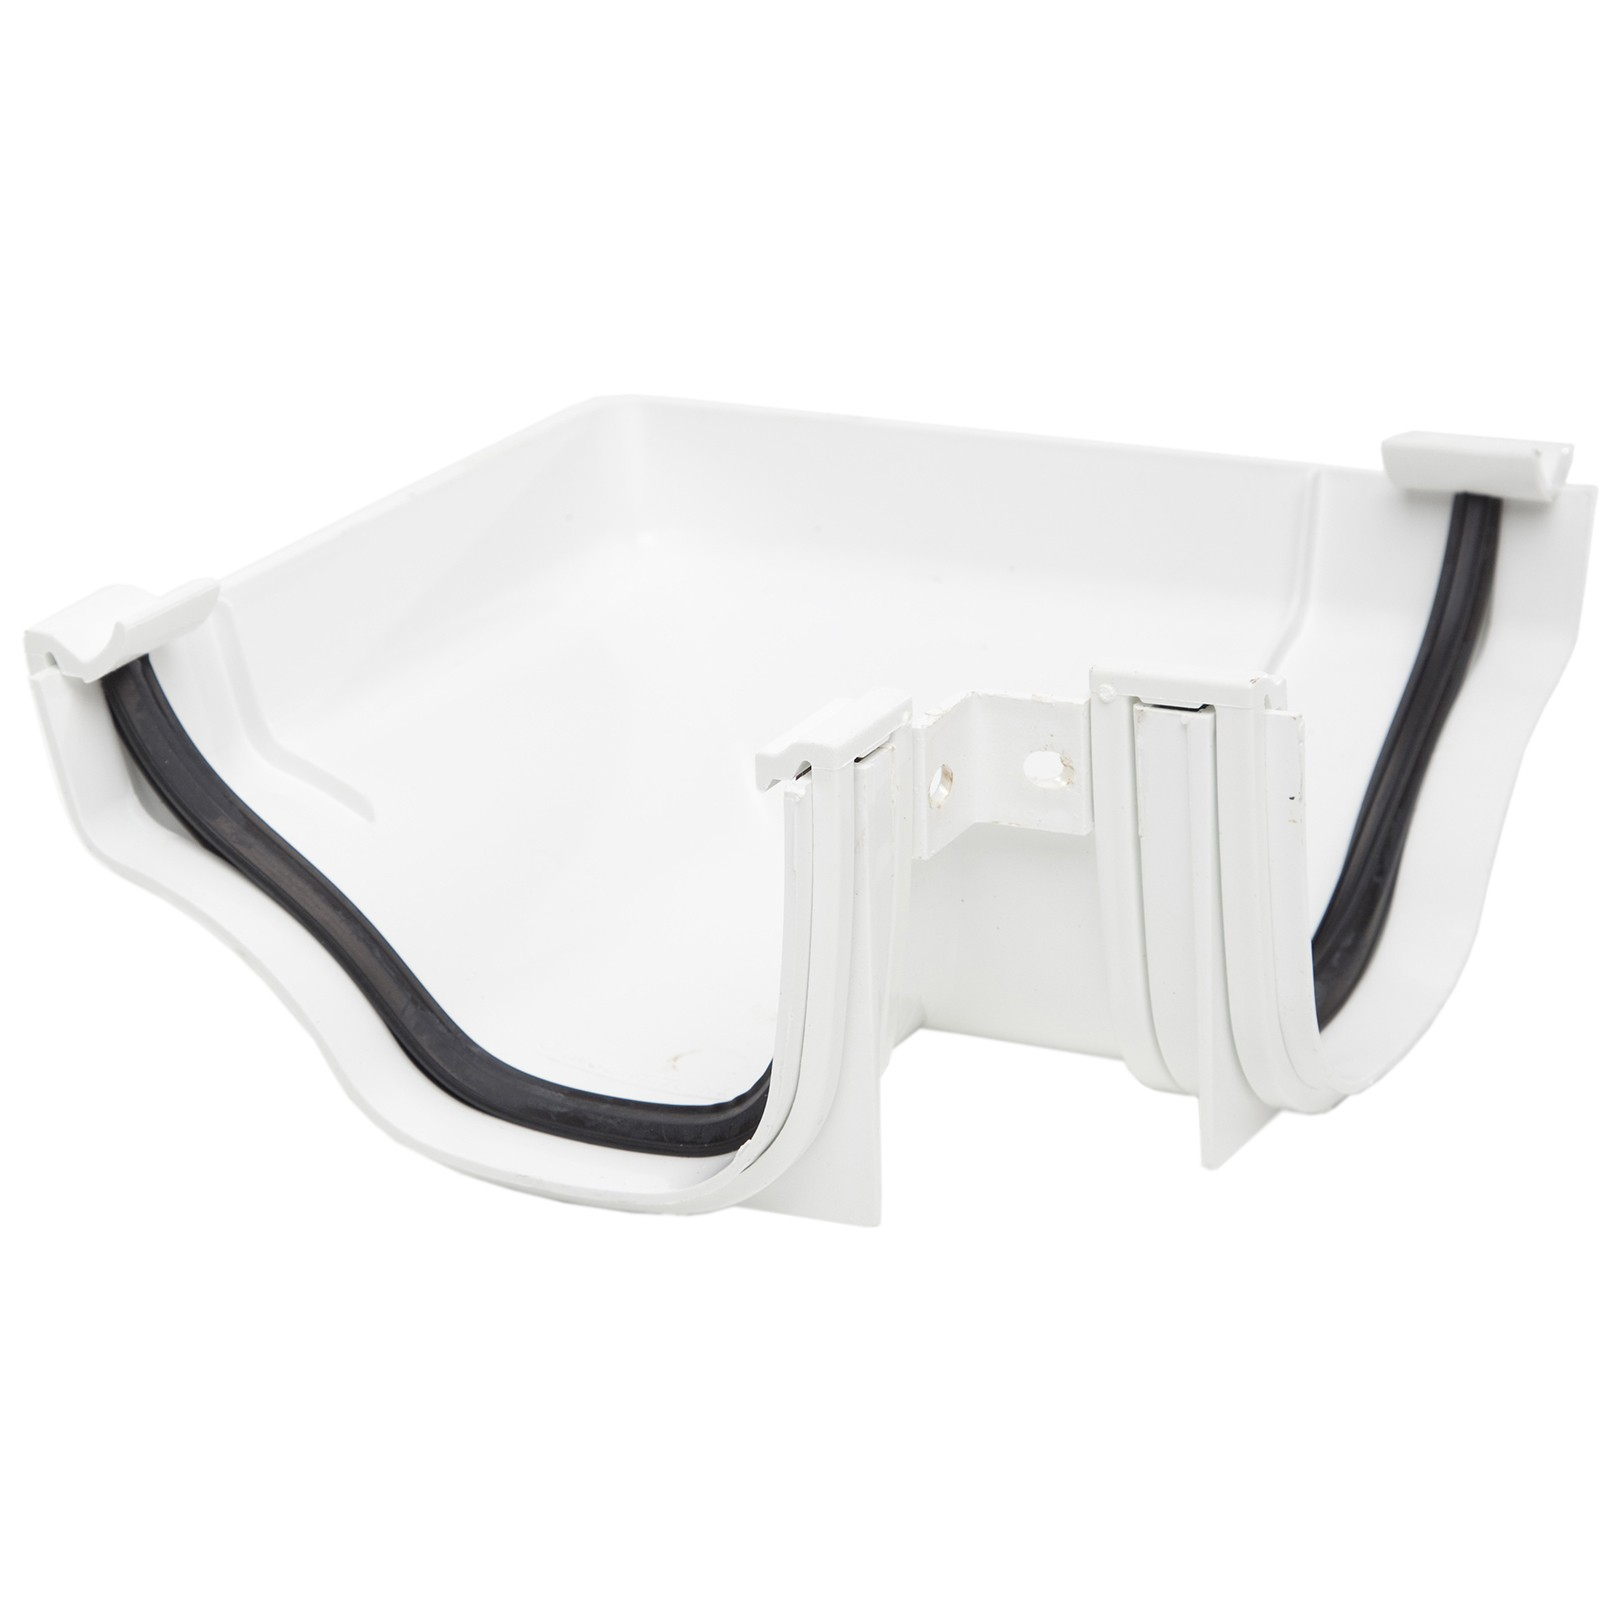 Polypipe 130mm Ogee Extra Capacity Gutter 90 Degree Angle (External) - White